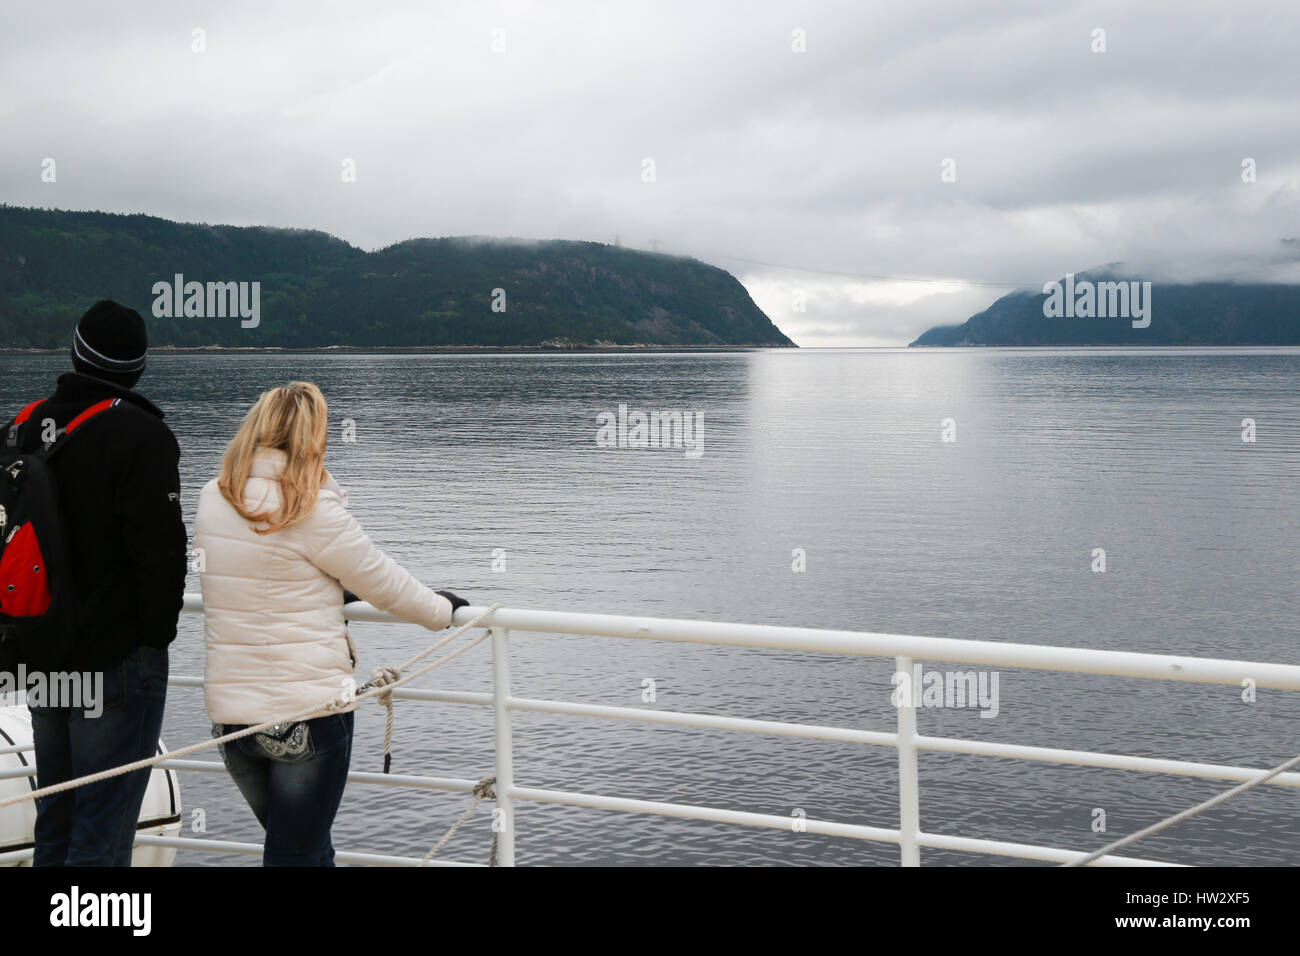 Two passengers on a tour boat in Saguenay Fjord - Stock Image